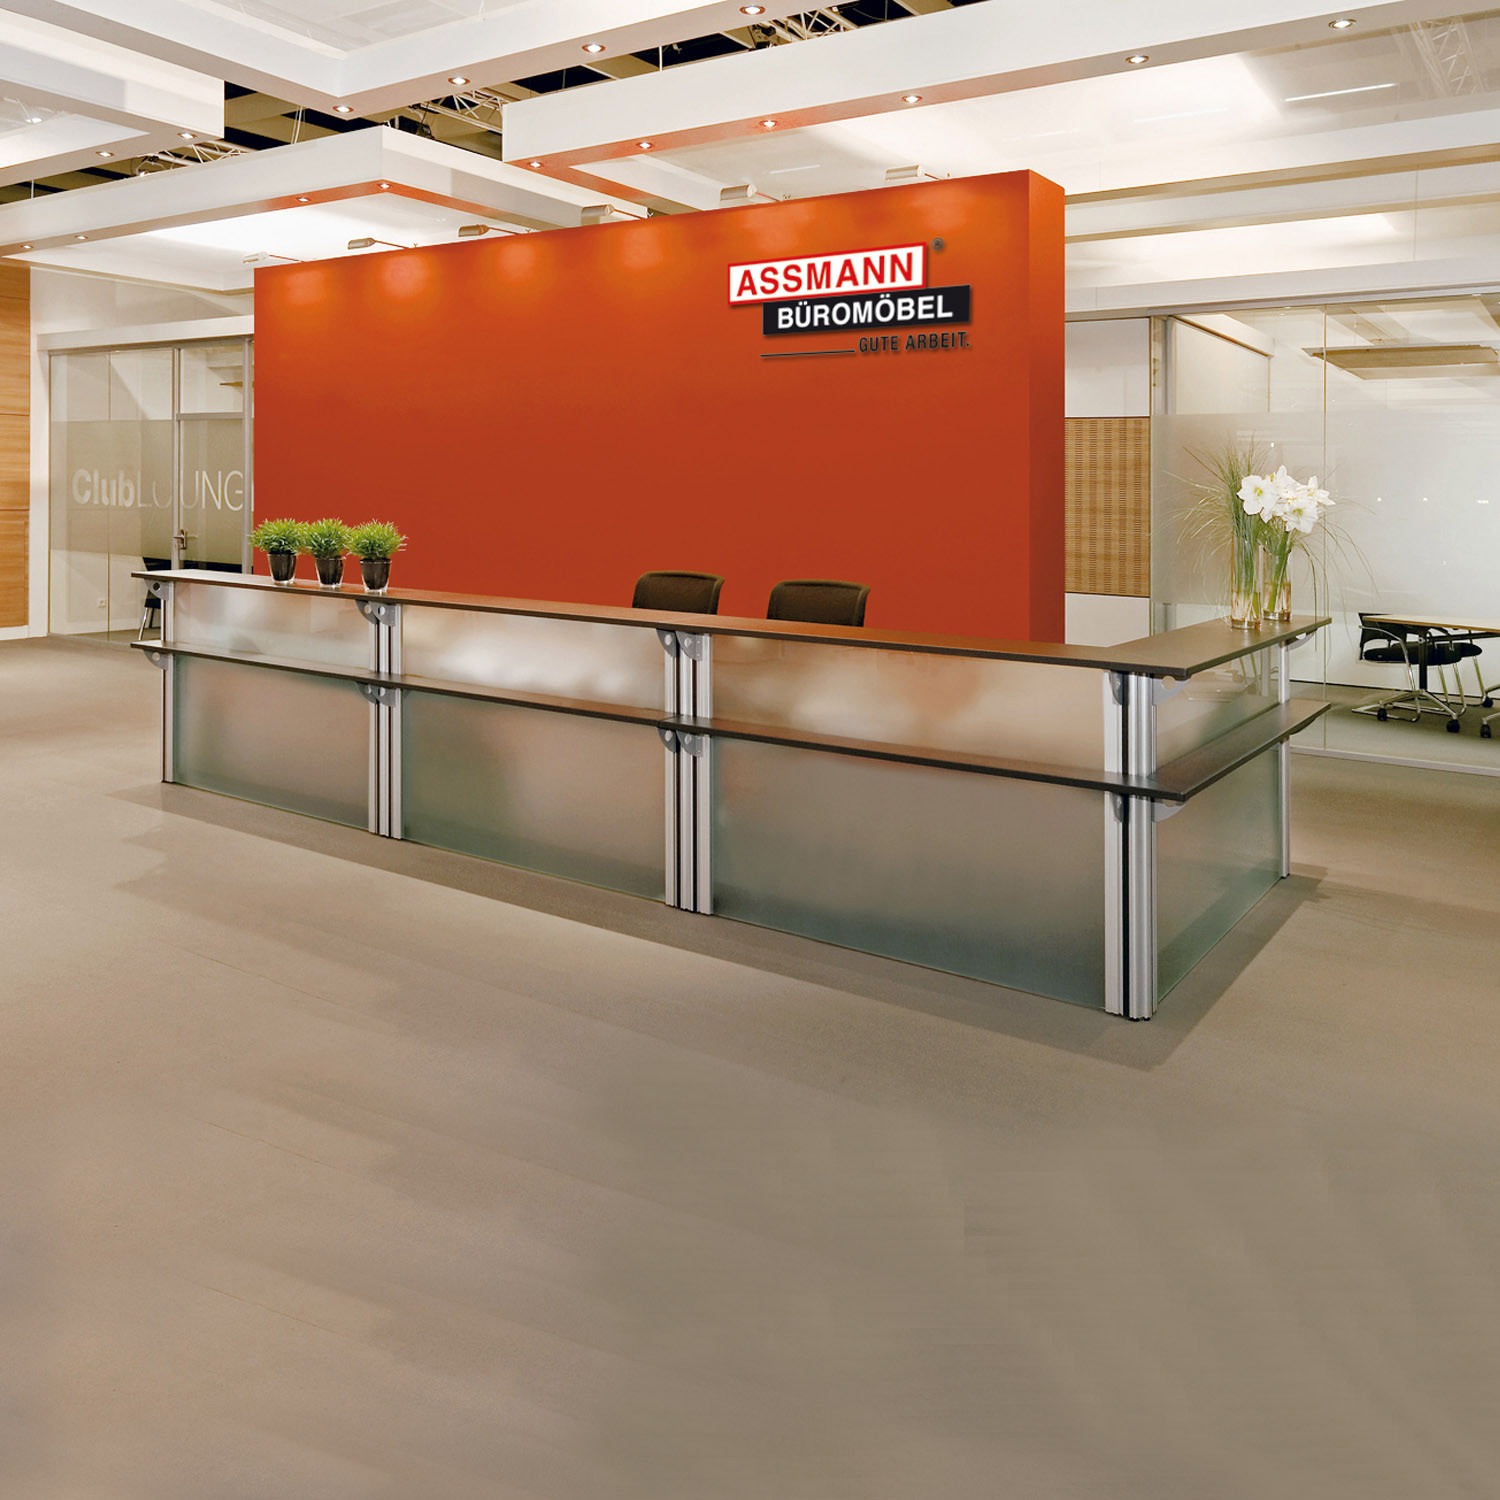 VisitASS Reception Desks from Assmann